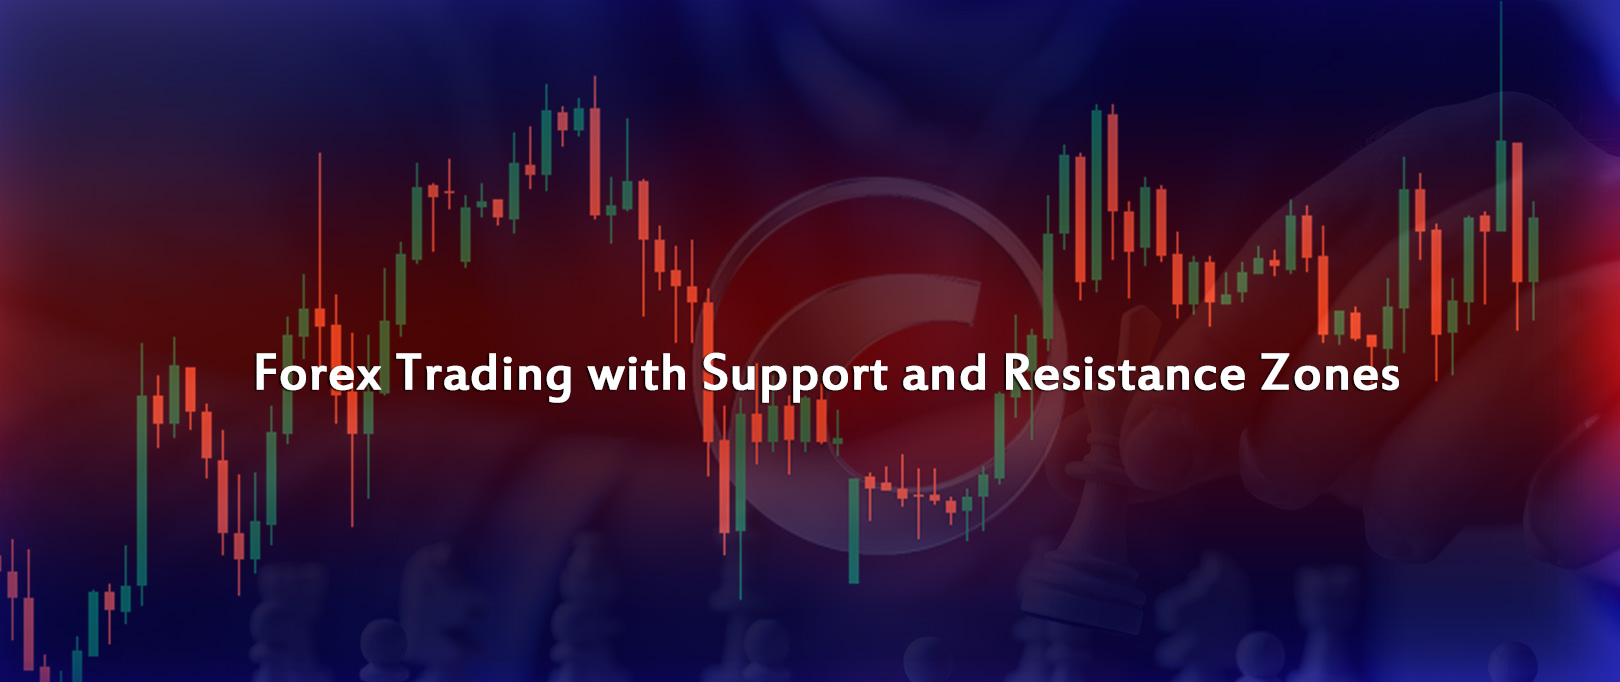 Forex-Trading-with-Support-and-Resistance-Zones-by-Prathilaba